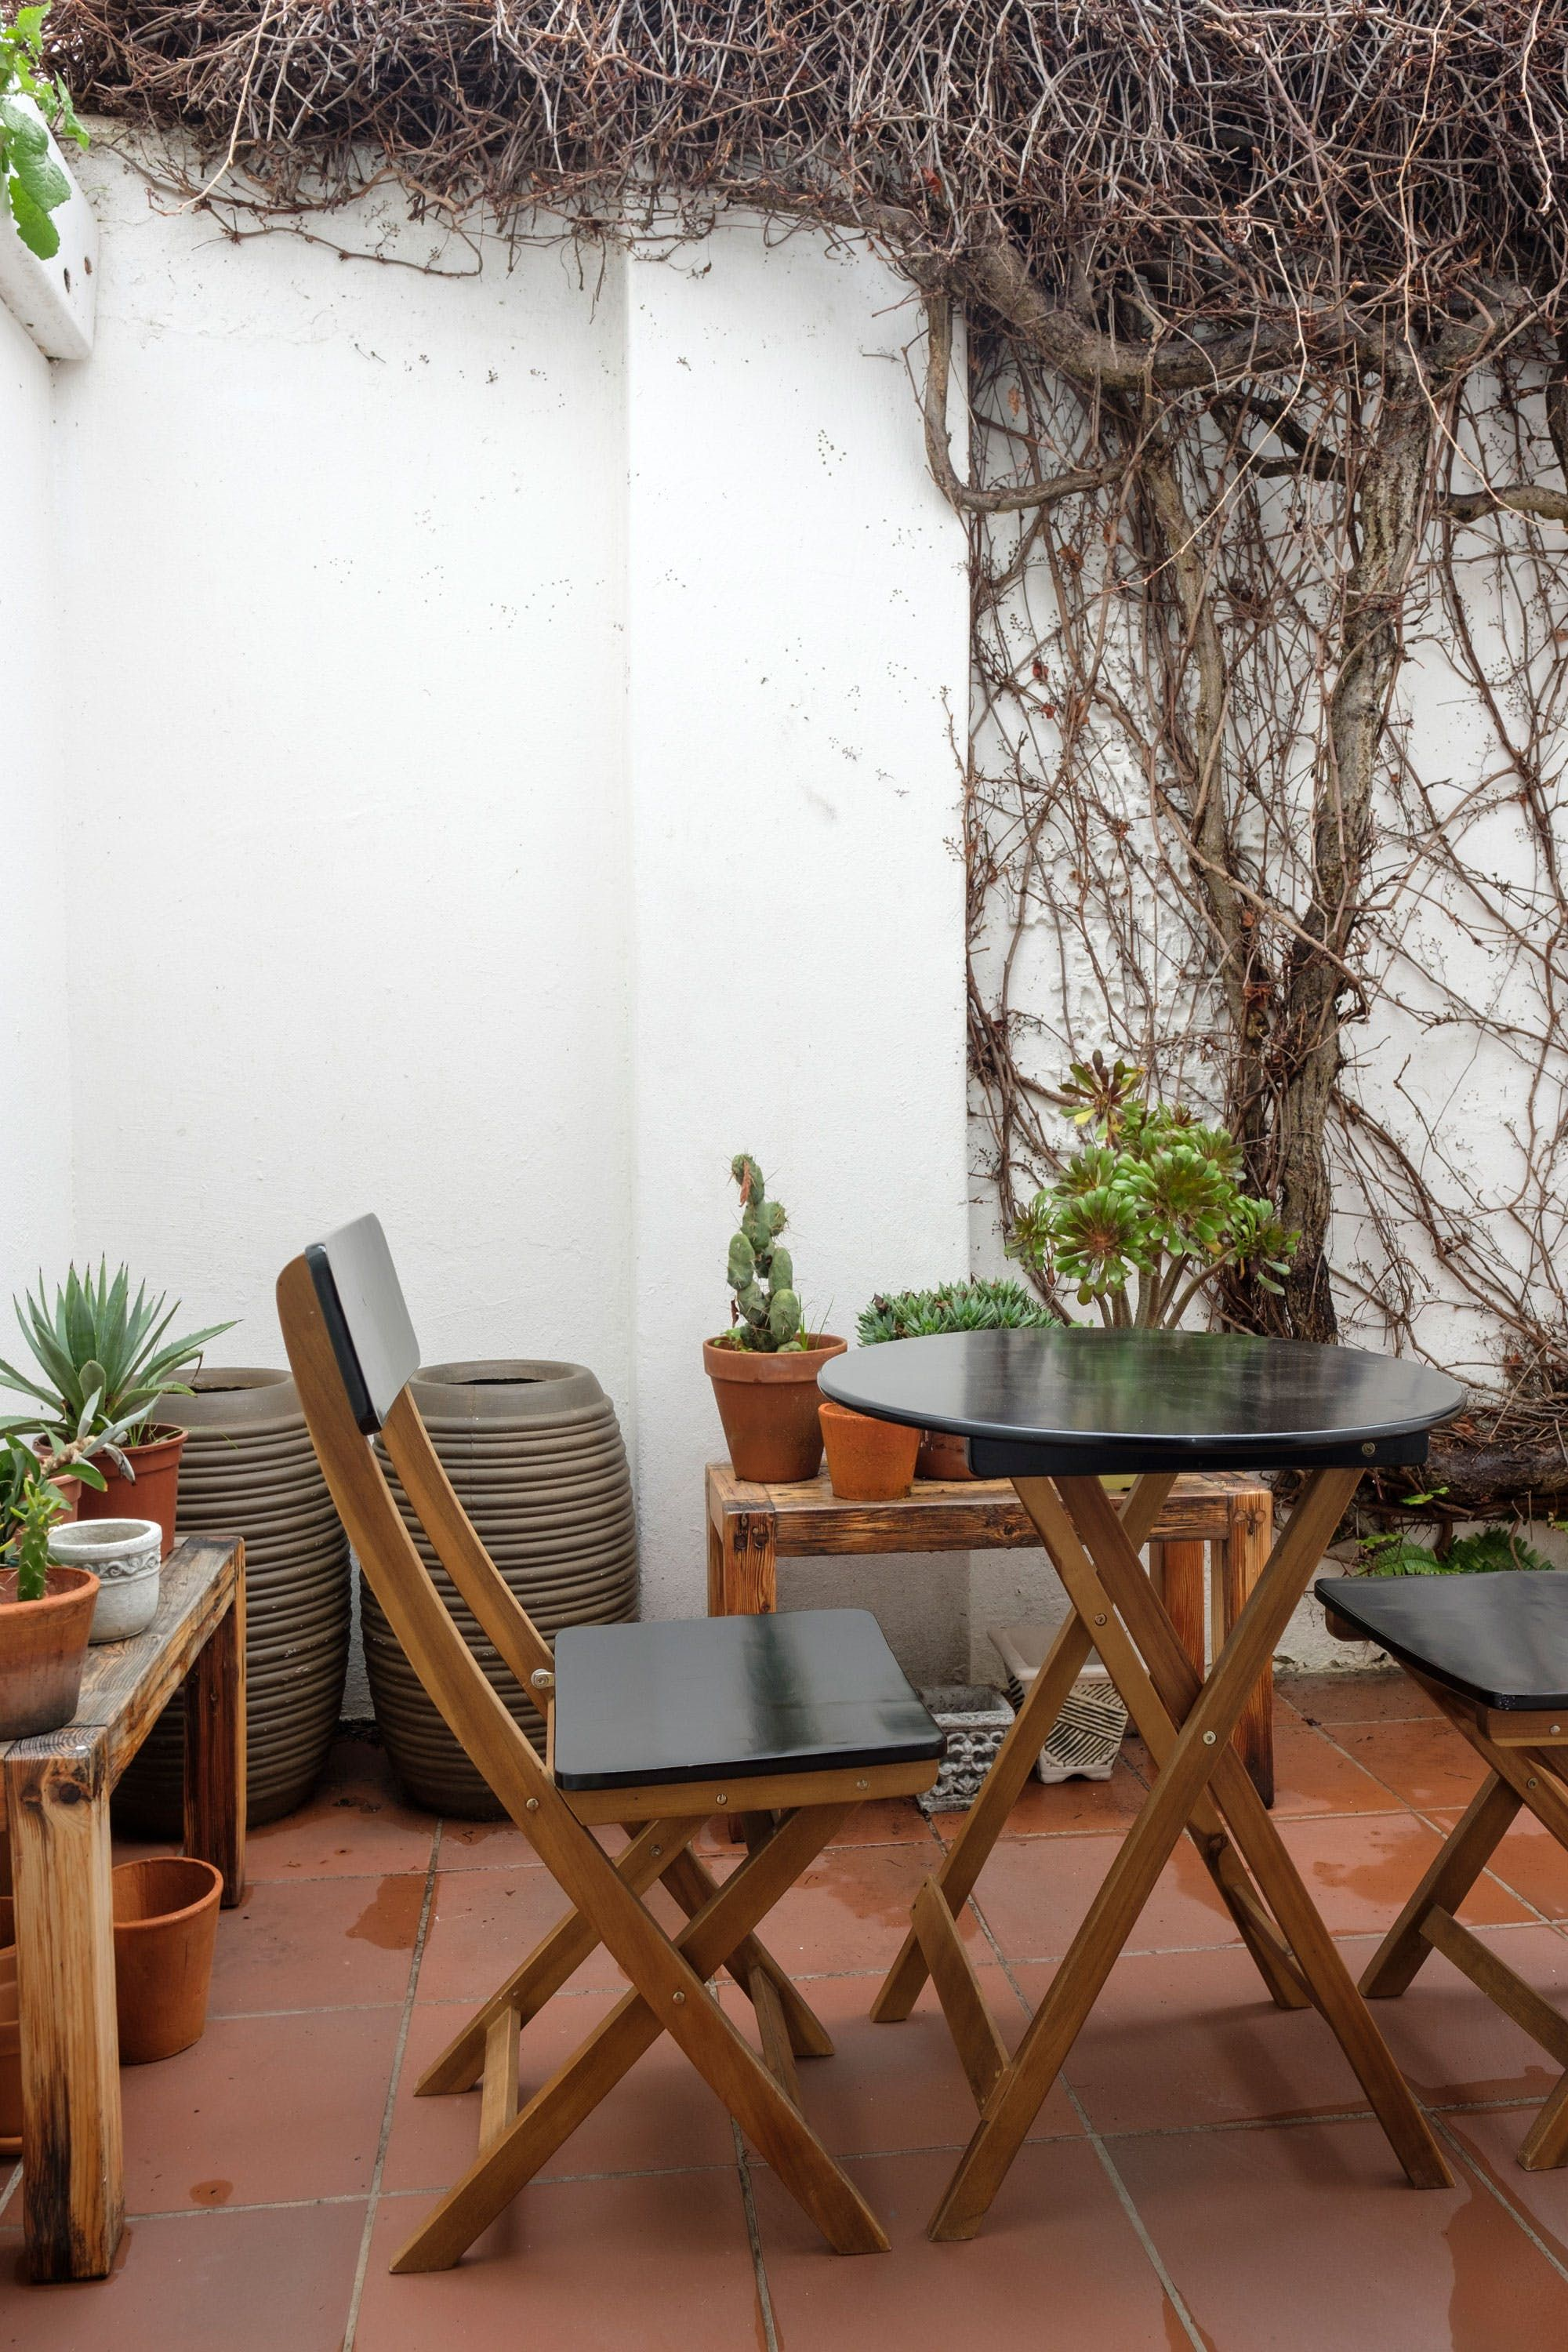 Rent A Center Accent Chairs.A Cozy Rental In The Center Of Vibrant Cape Town Porch Pinterest